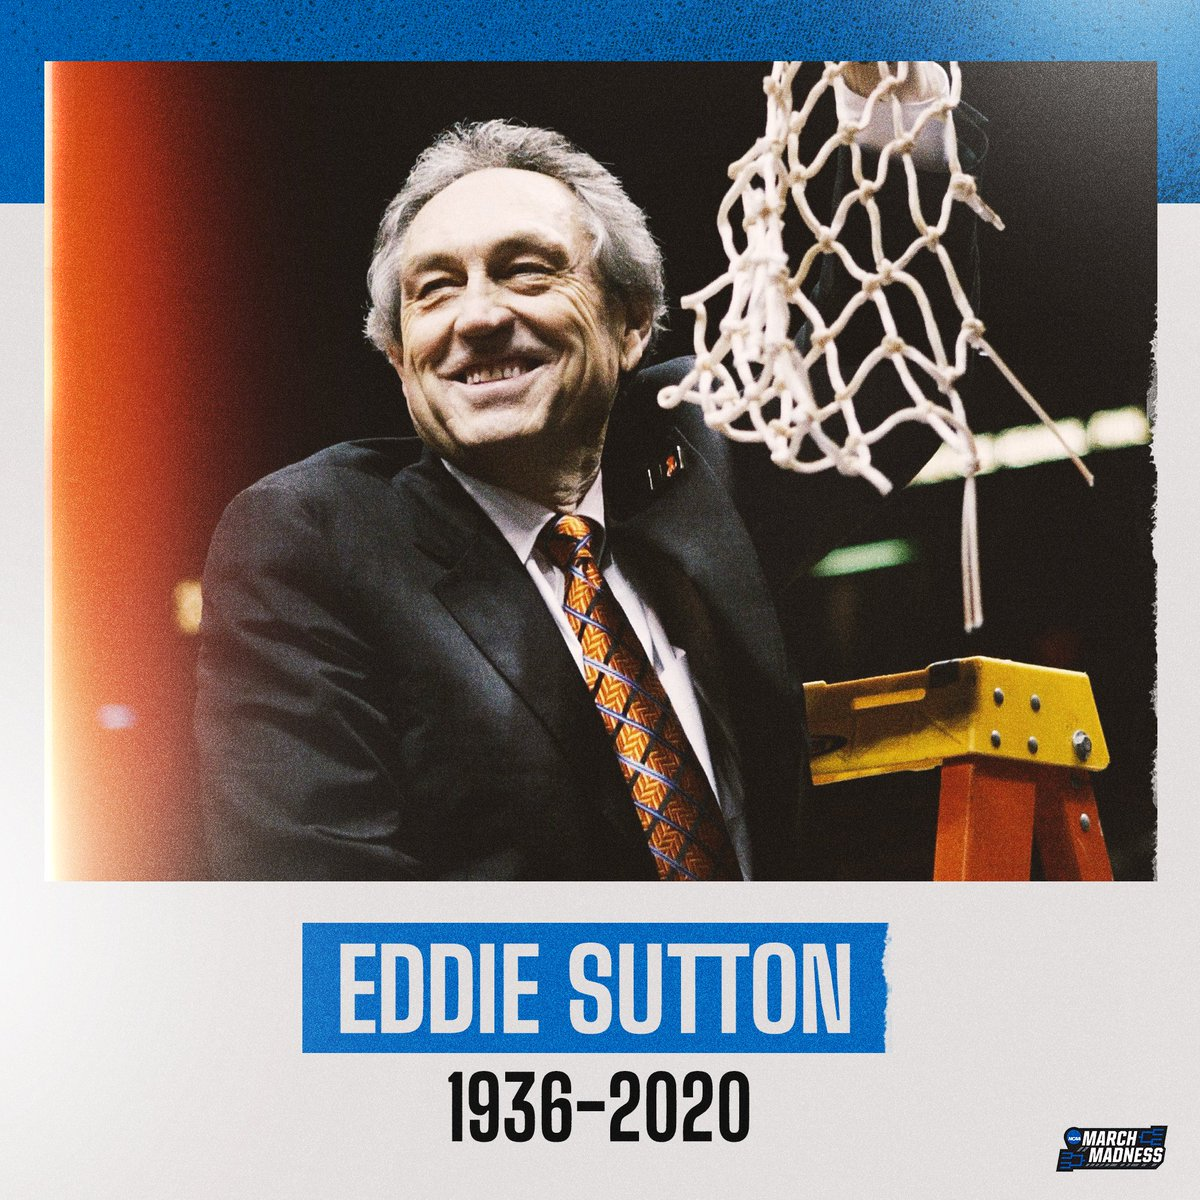 We join the basketball community in celebrating the life of legendary coach Eddie Sutton.  🏀 806 wins 🏀 3x @FinalFour appearances 🏀 1st coach to take 4 schools to the NCAA Tournament https://t.co/UK9euKTQBv